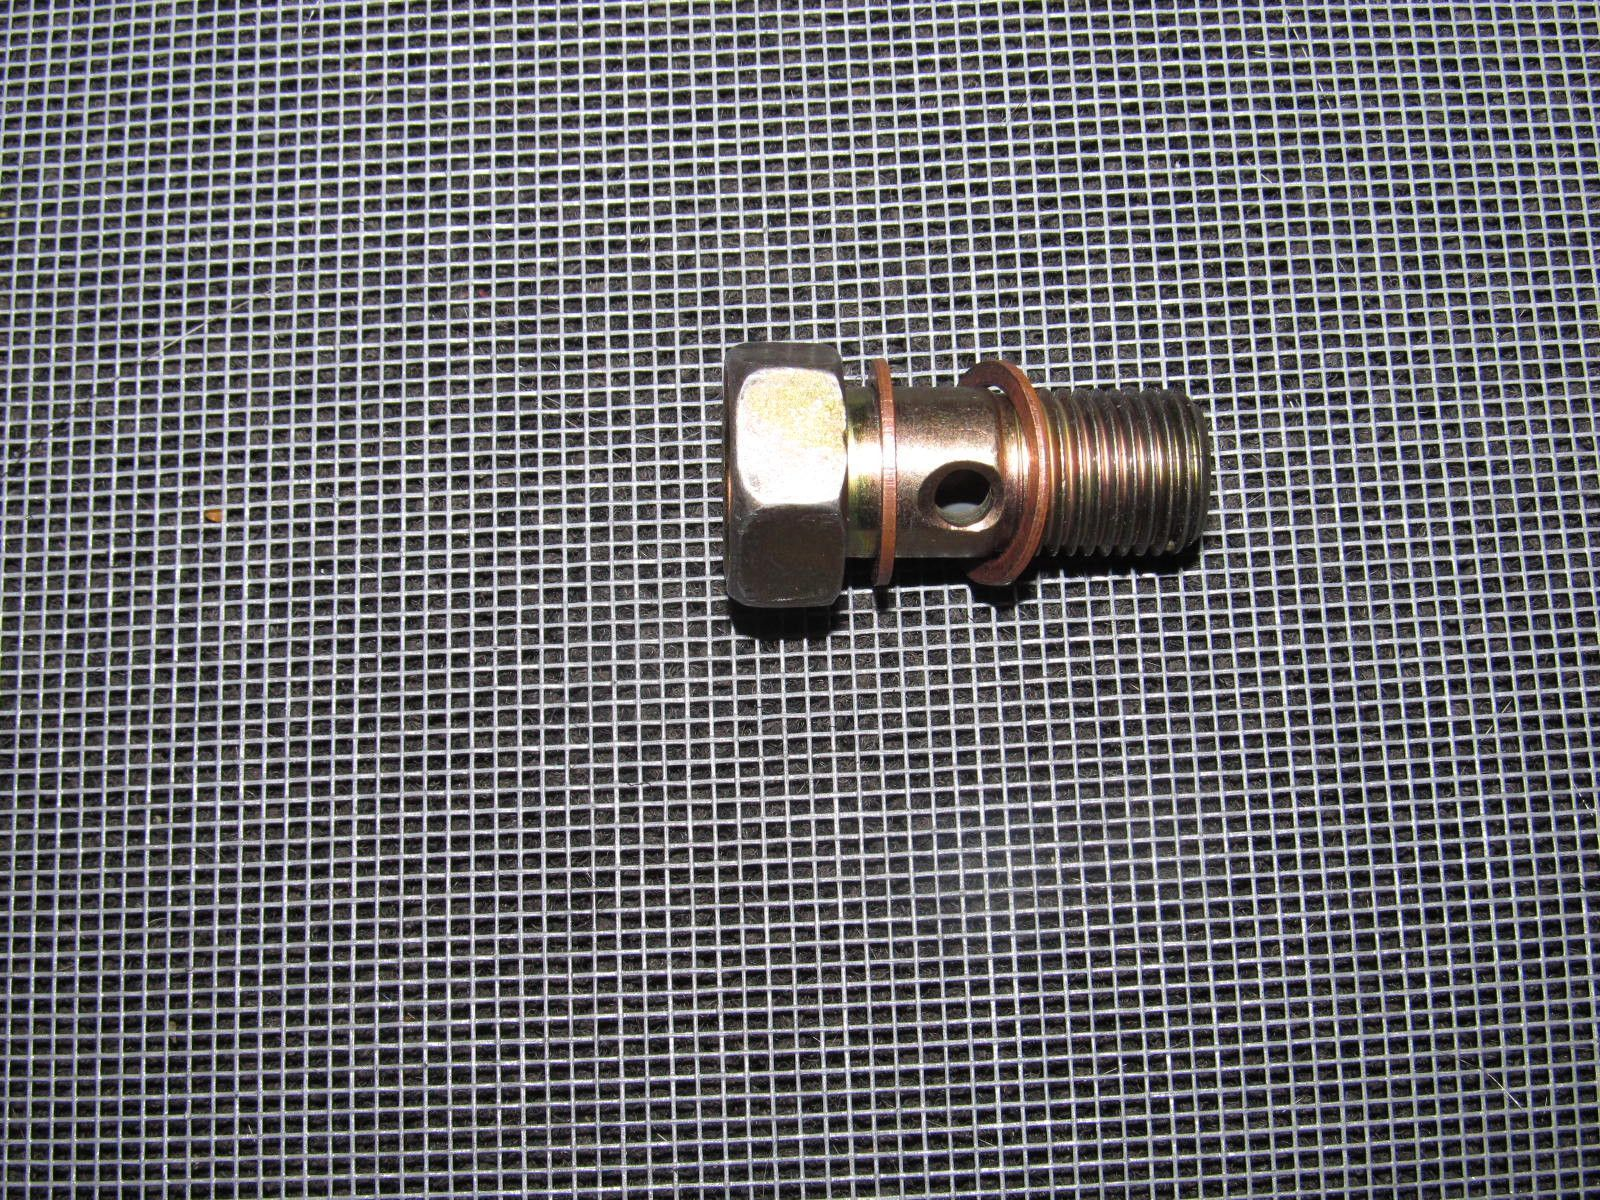 94-01 acura integra oem fuel line fuel filter banjo bolt - 1 piece